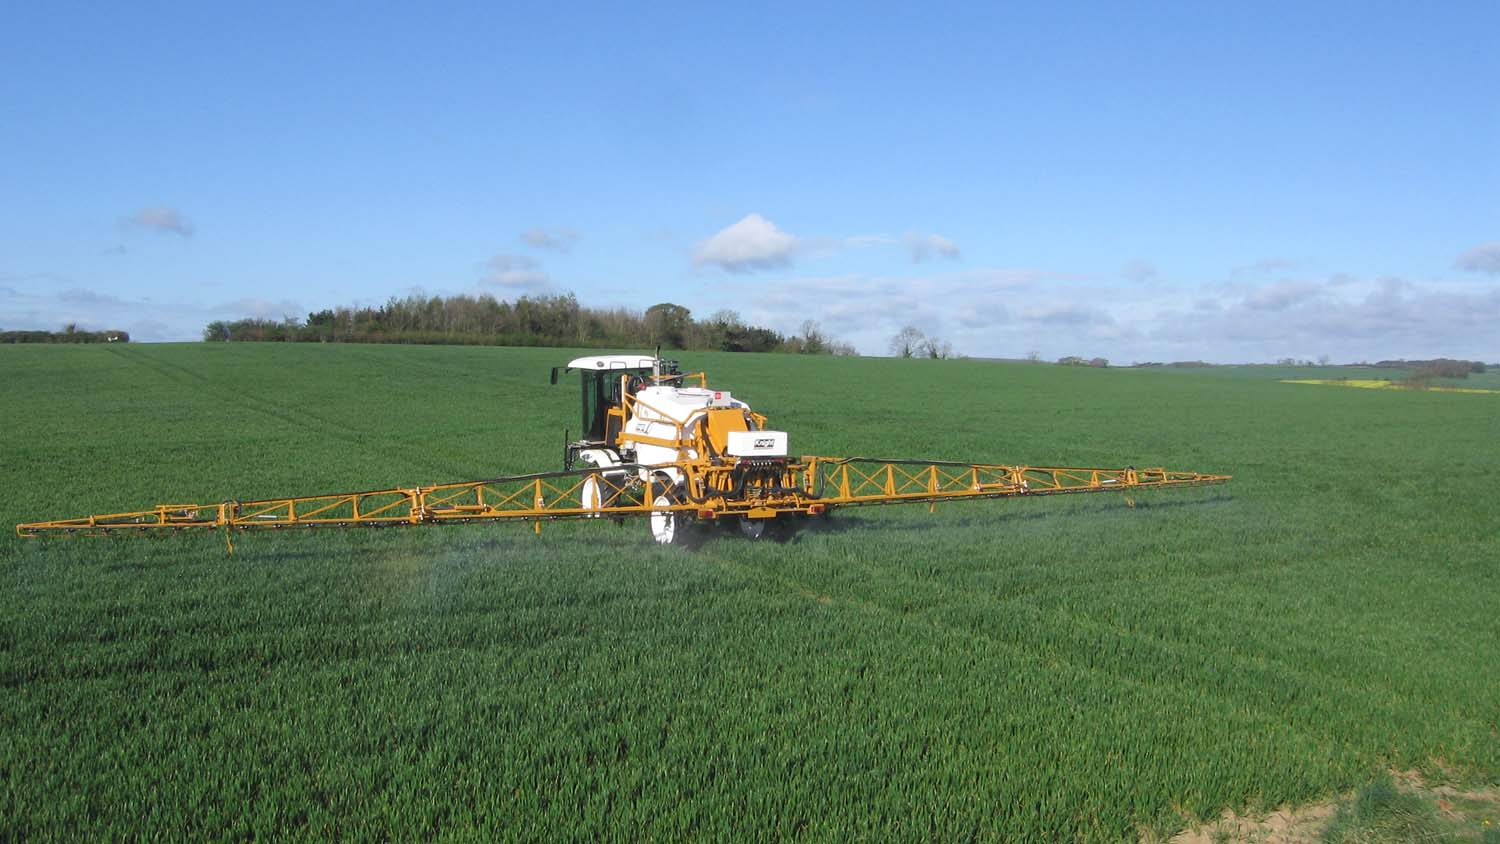 CropTec Show 2017: Spray timings review can help in battle against septoria